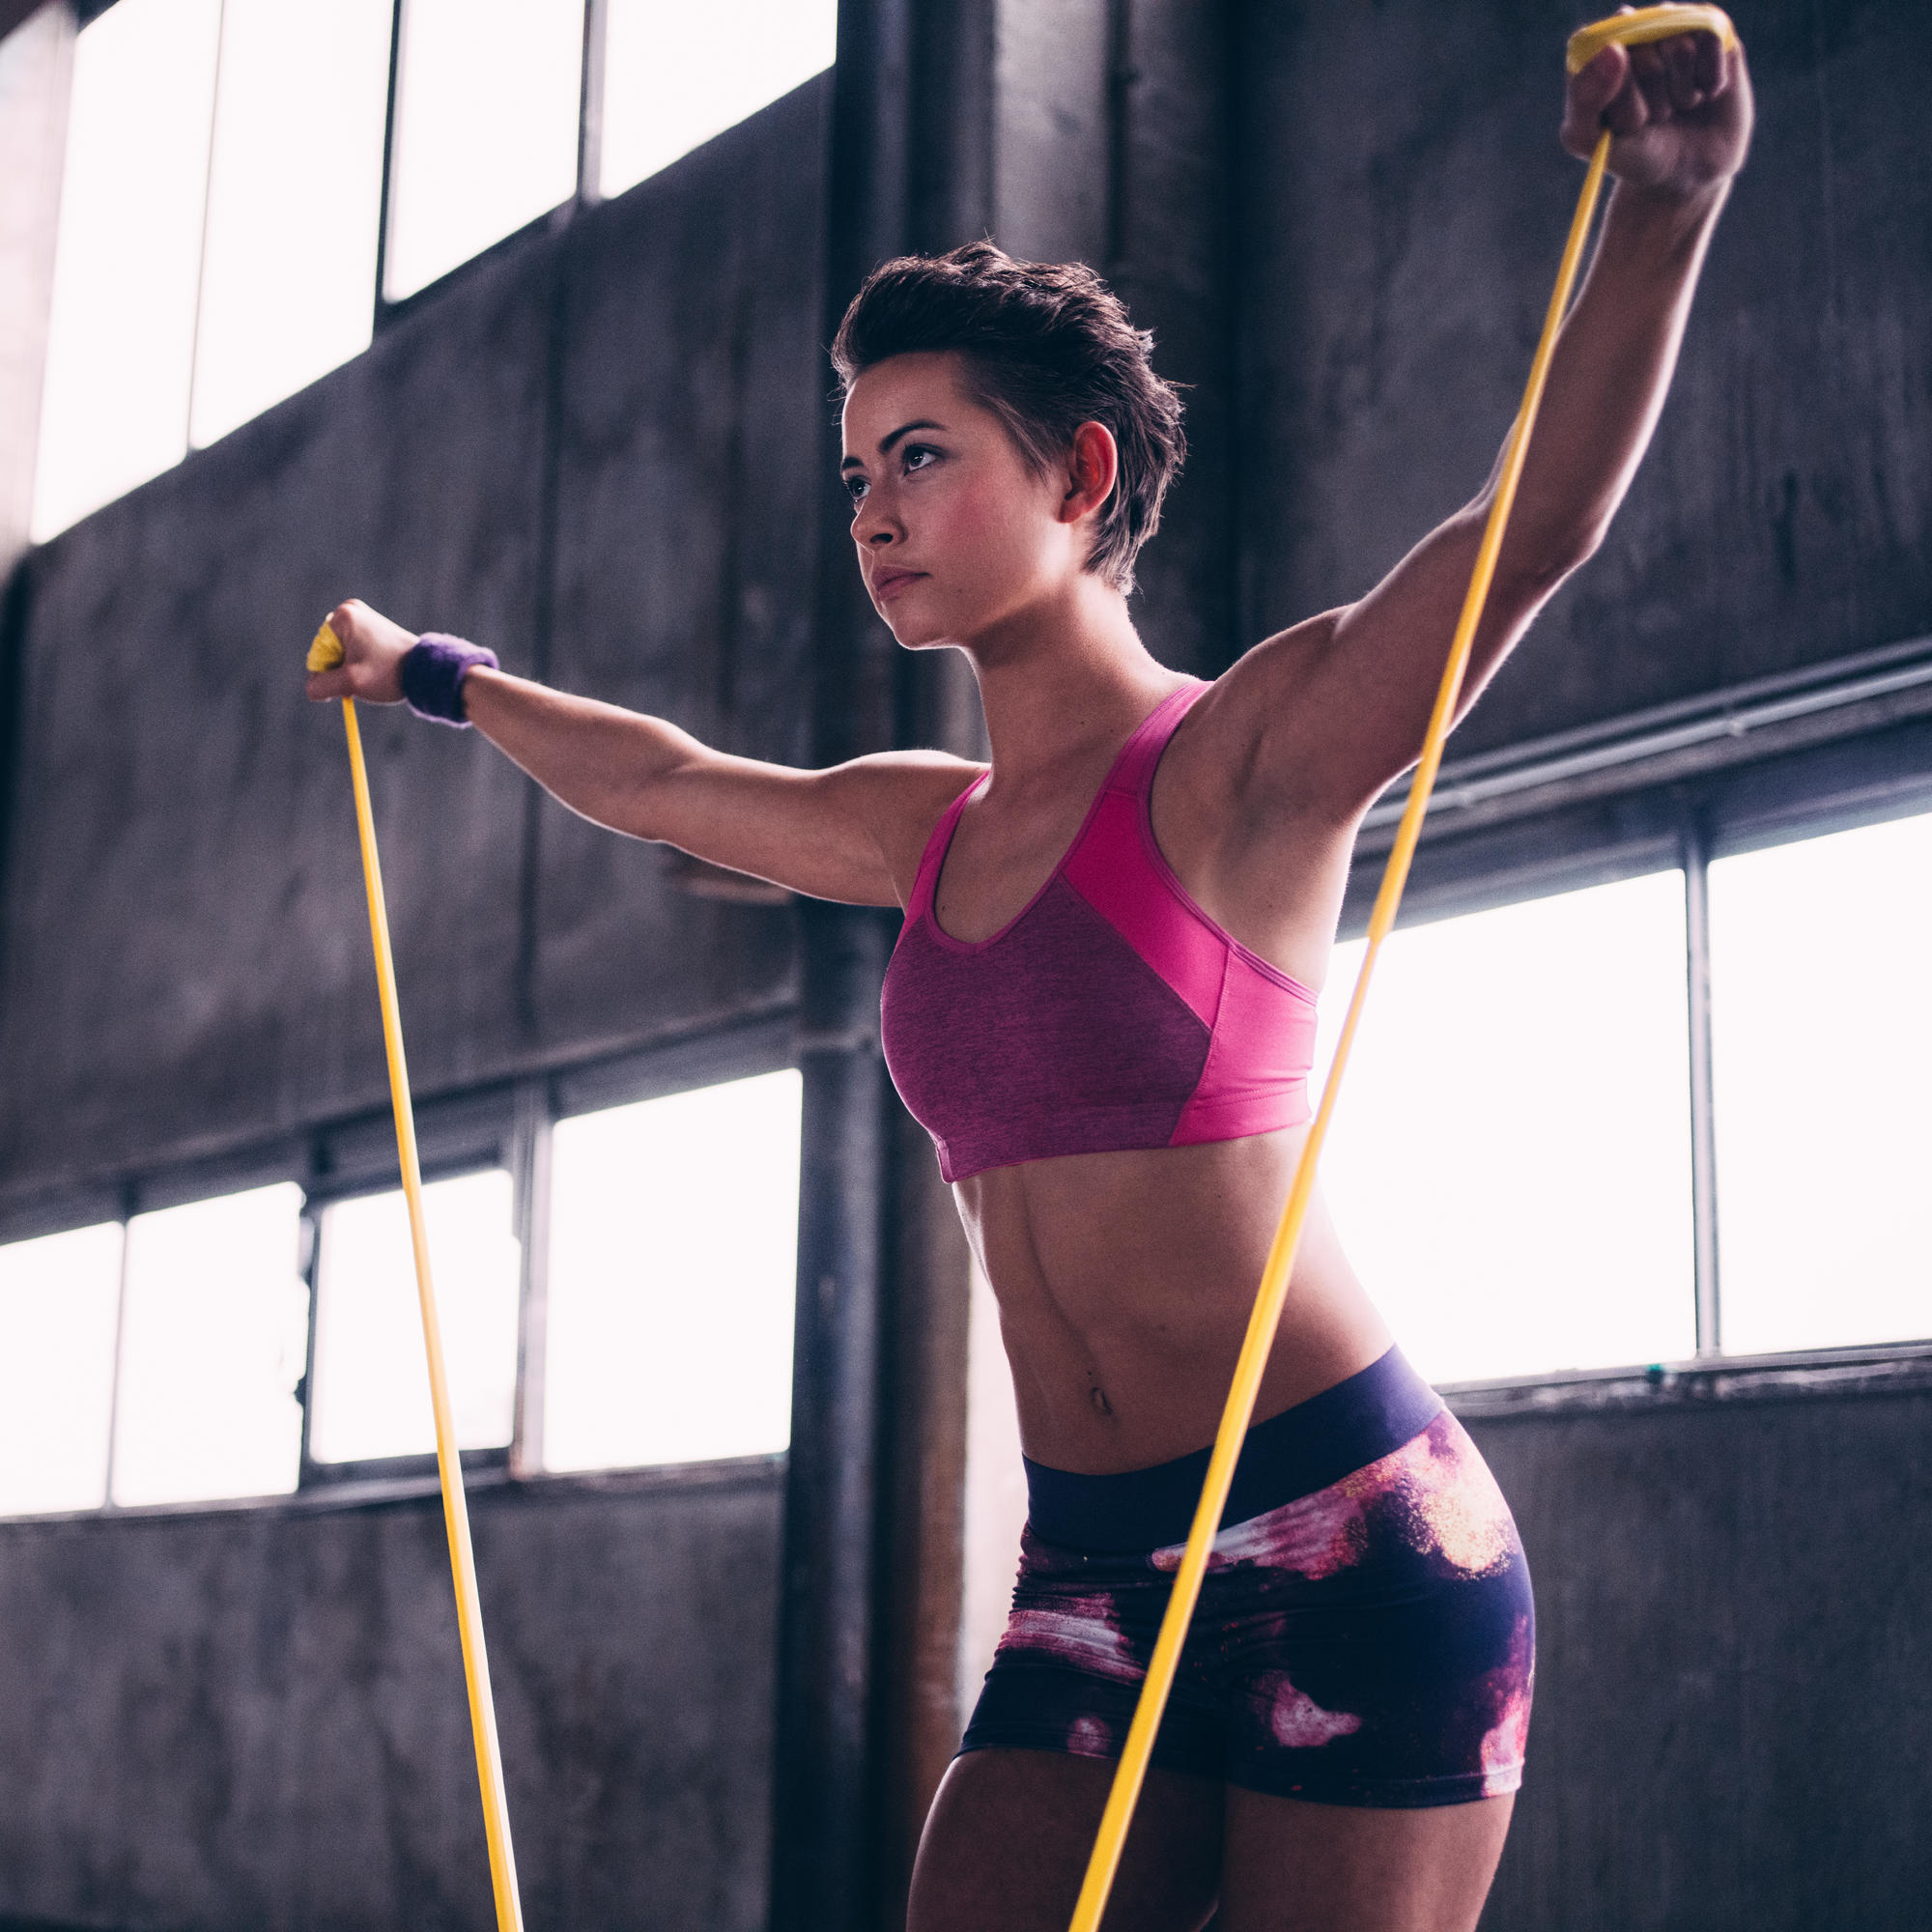 10 Resistance Band Exercises To Build Total-Body Strength